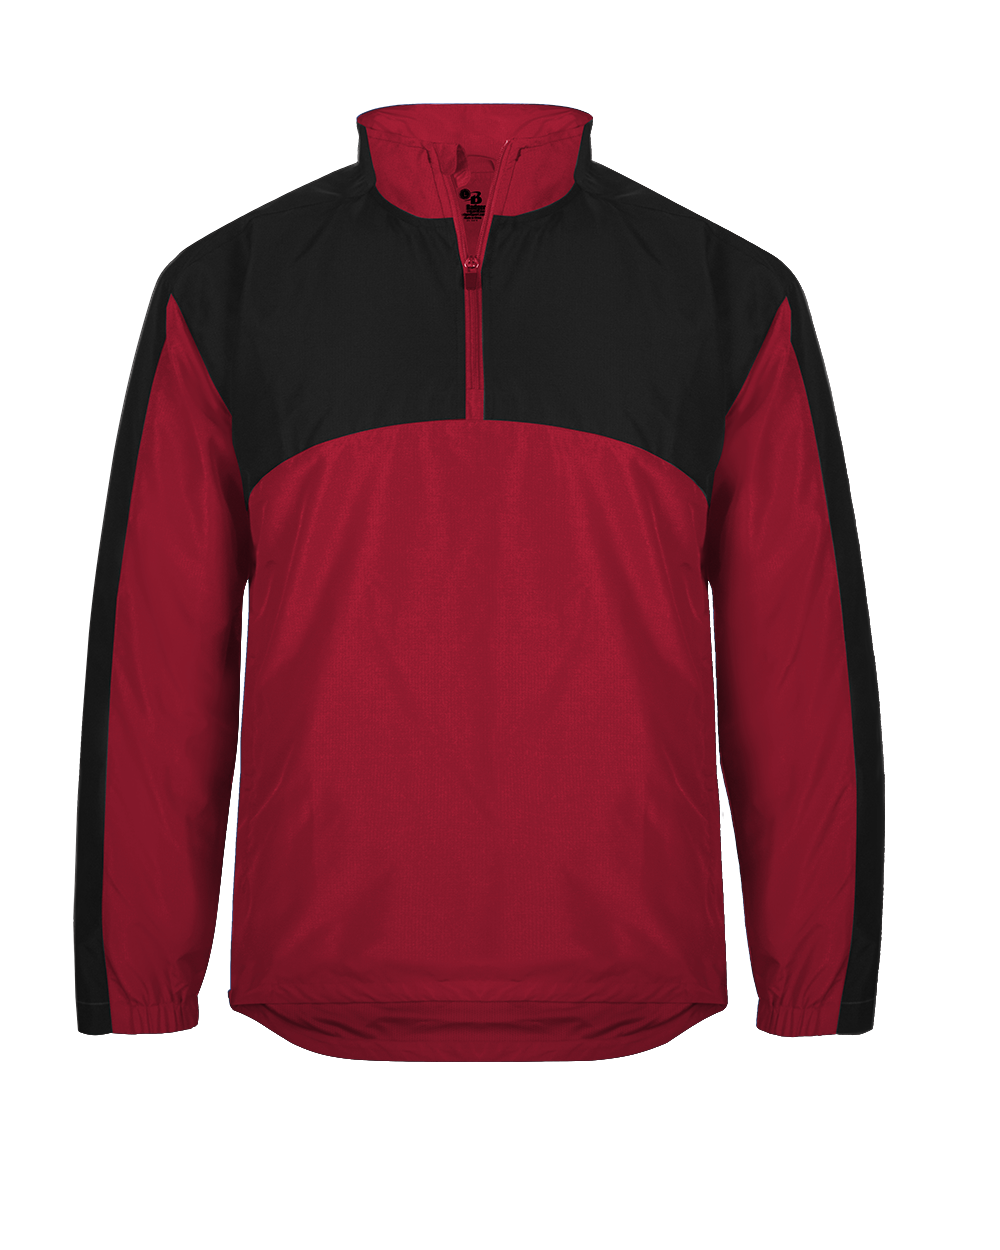 Contender 1/4 Zip Jacket - Red/Black